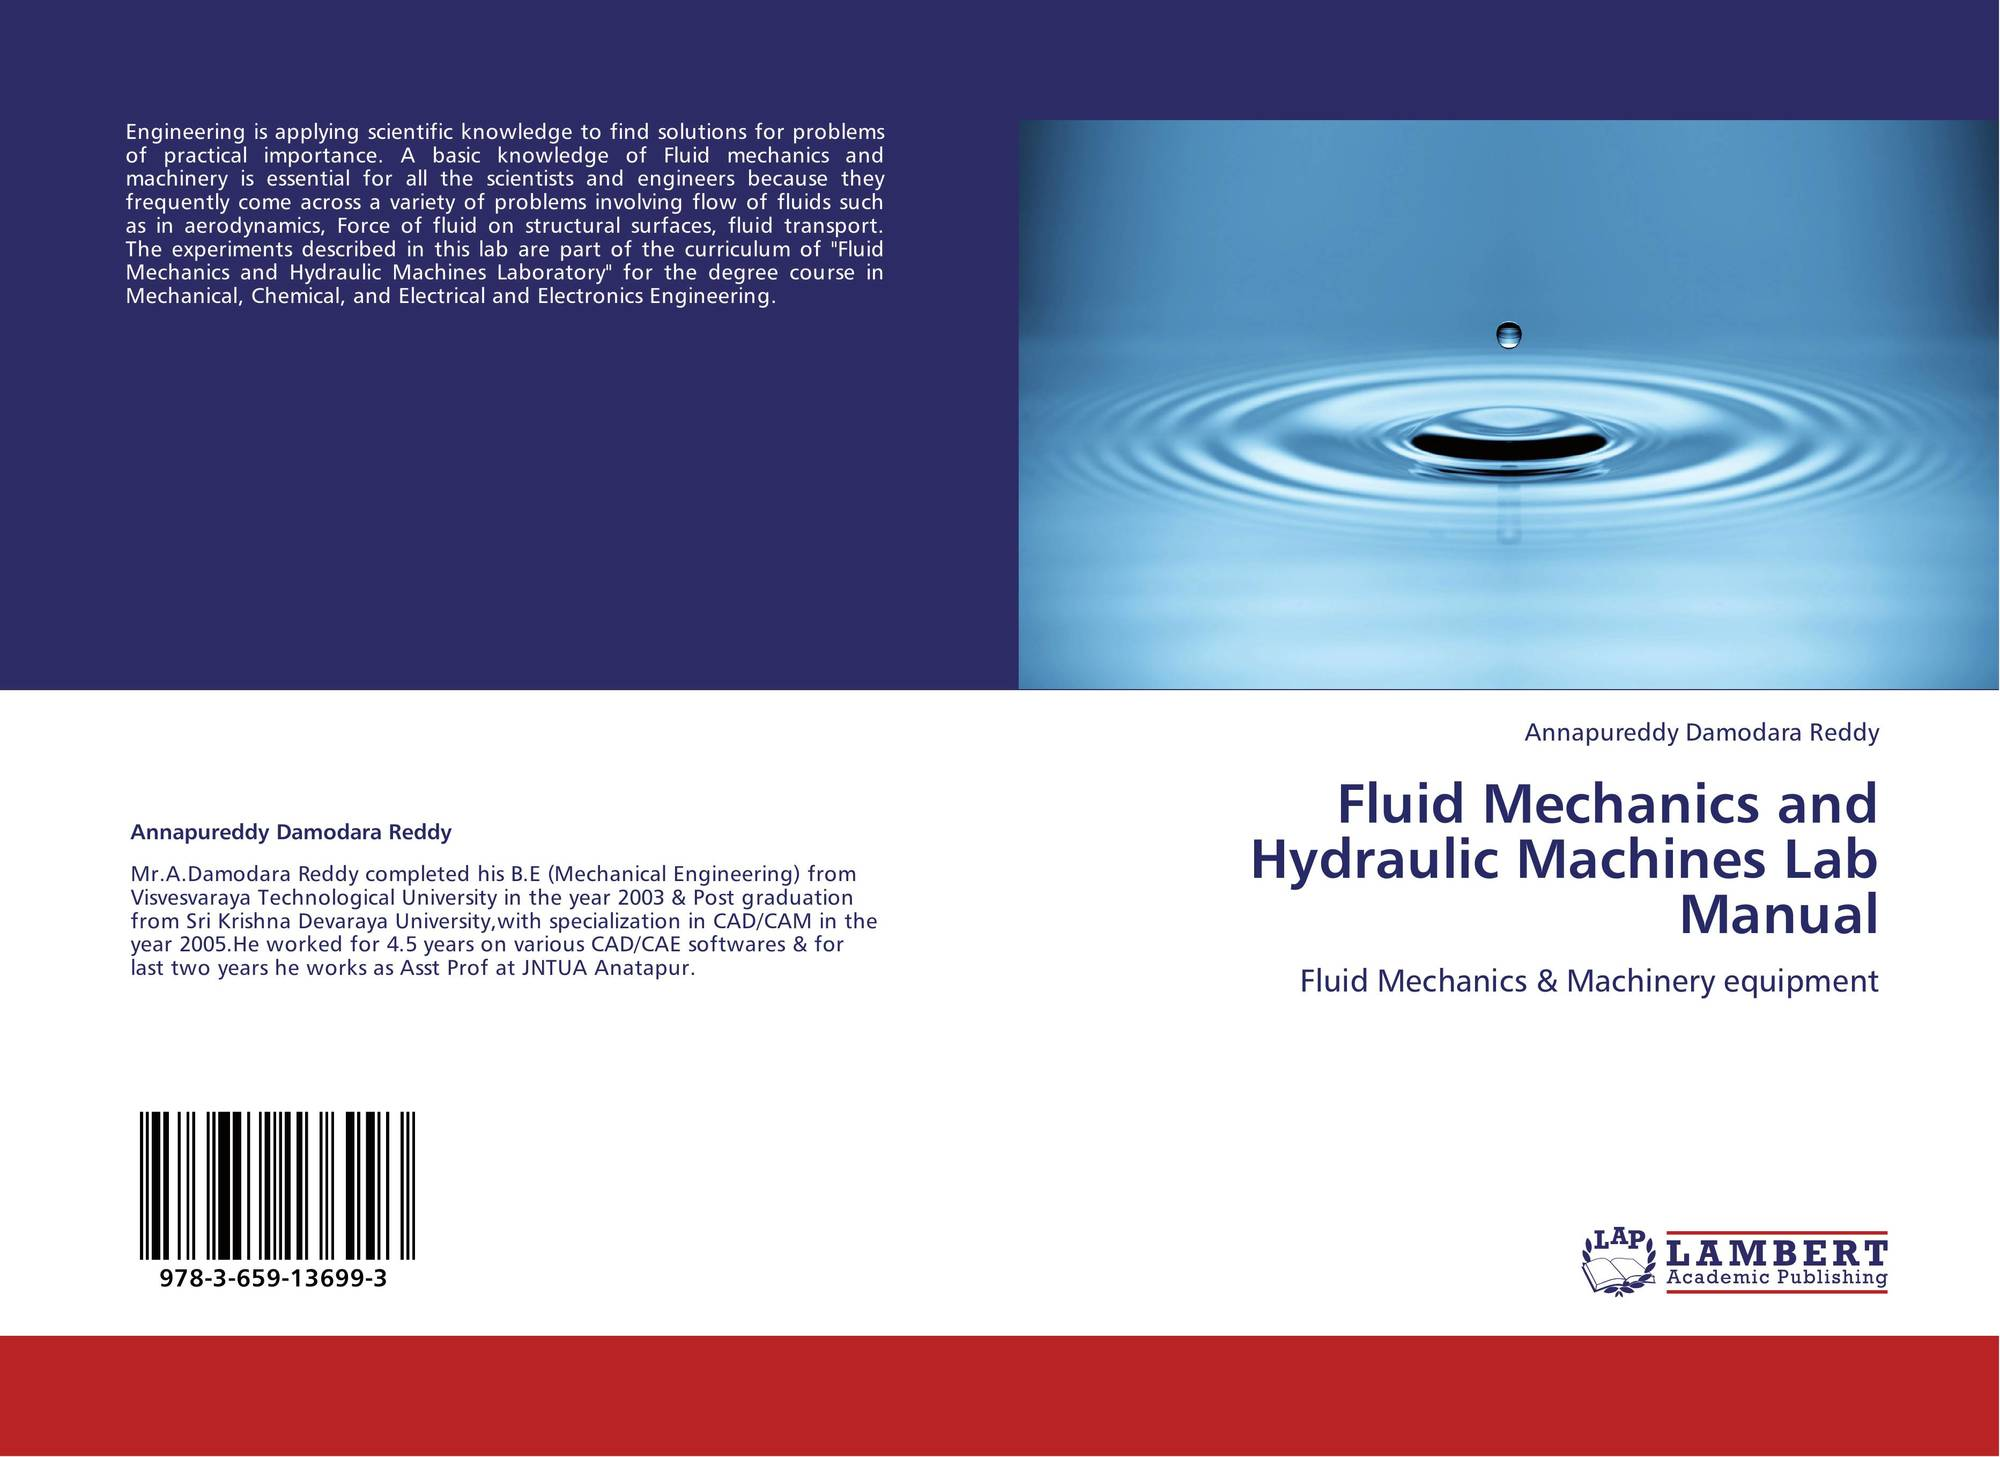 fluid mechanics and hydraulics machines manual user guide manual rh sibere co hydraulics lab manual with readings hydraulics and pneumatics lab manual pdf